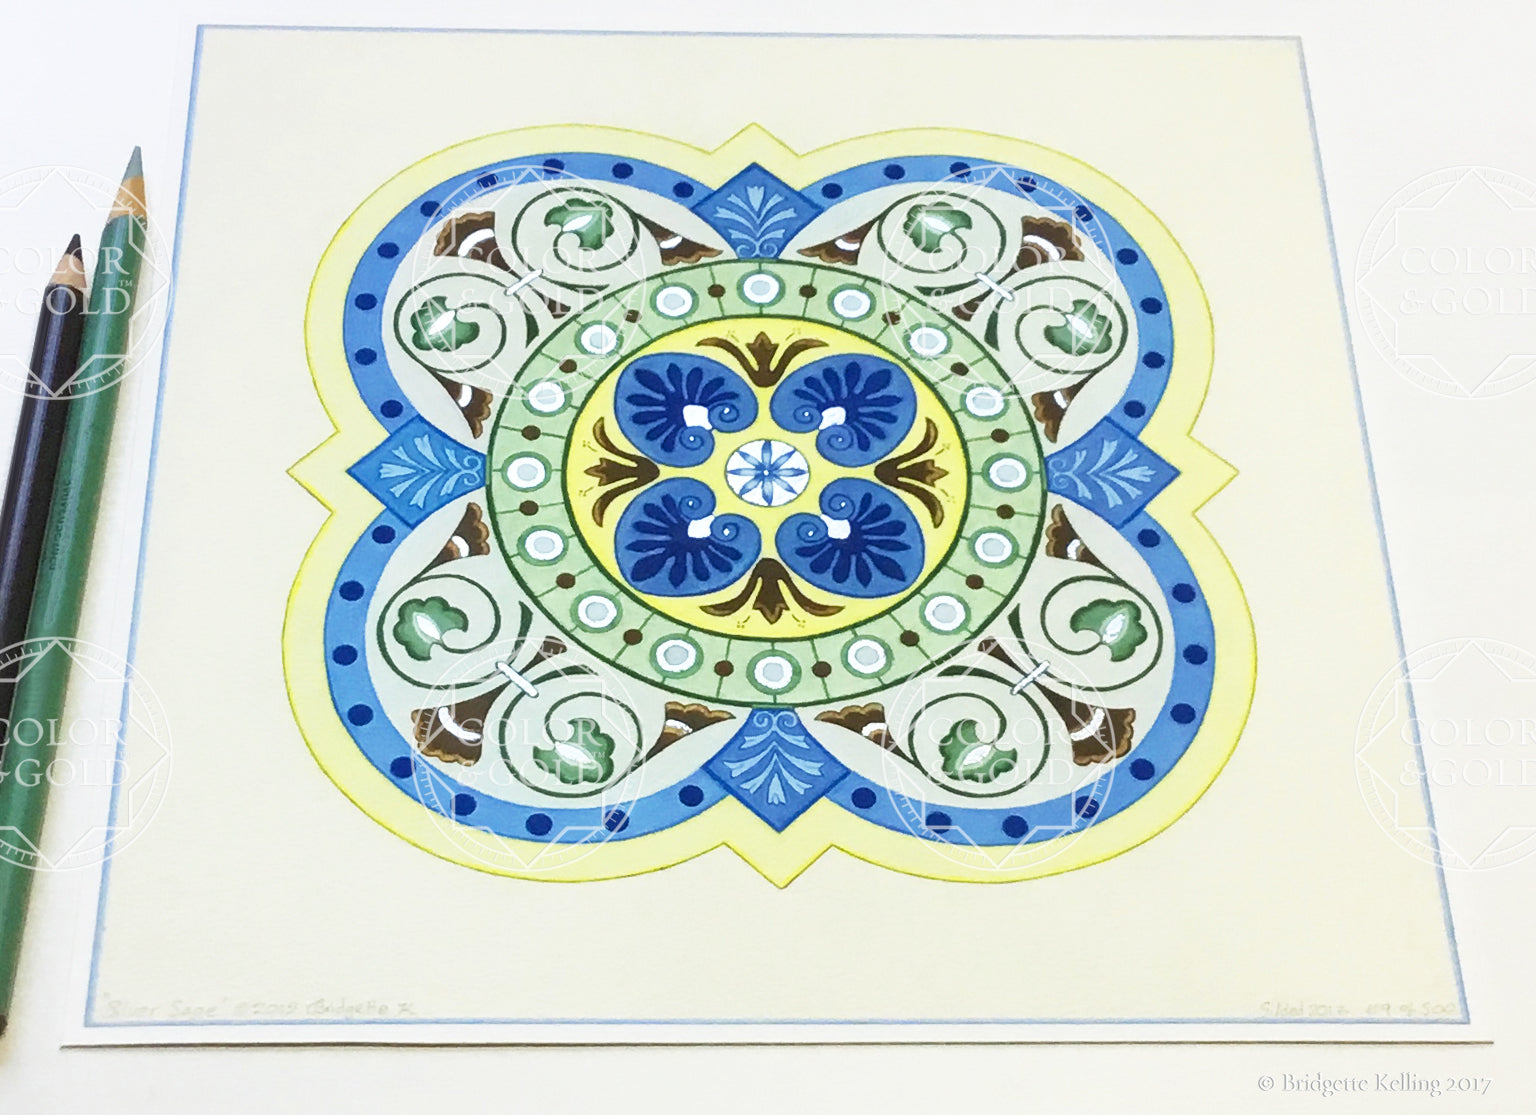 "Blue, green, yellow & palladium gilded tile design ""Silver Sage"" illumination 8"" x 8"" - Color & Gold LLC © Bridgette Kelling"